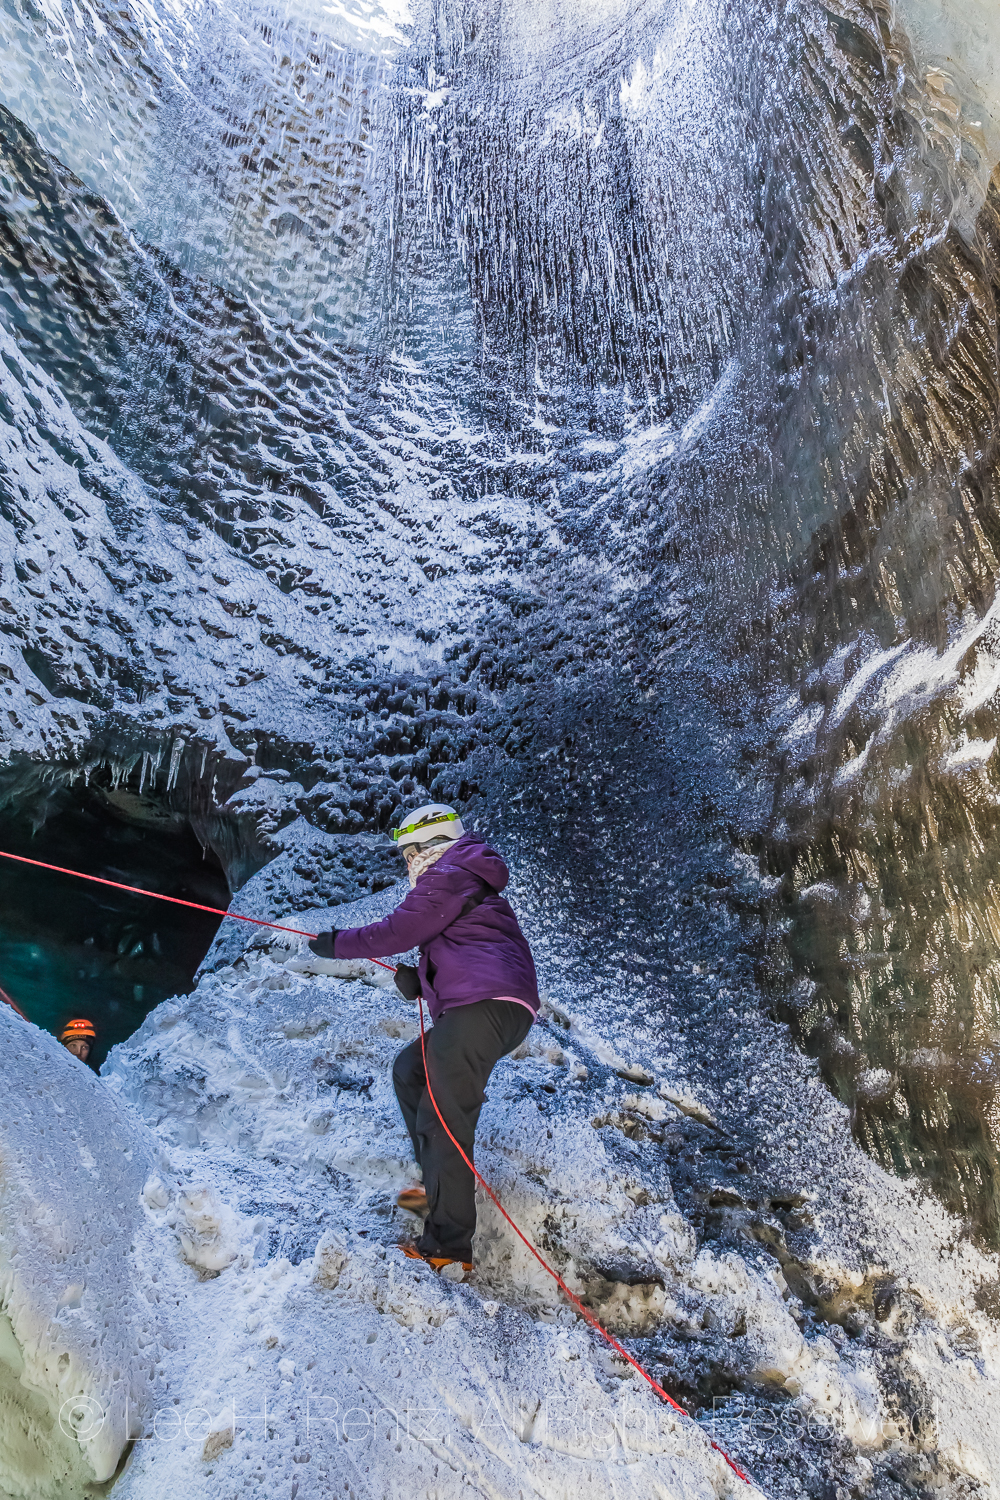 Karen Rentz using rope and crampons to ascend to cave entrance during ice cave tour to a lobe of Mýrdalsjökull Glacier, which sits atop Katla Volcano, in winter in Iceland